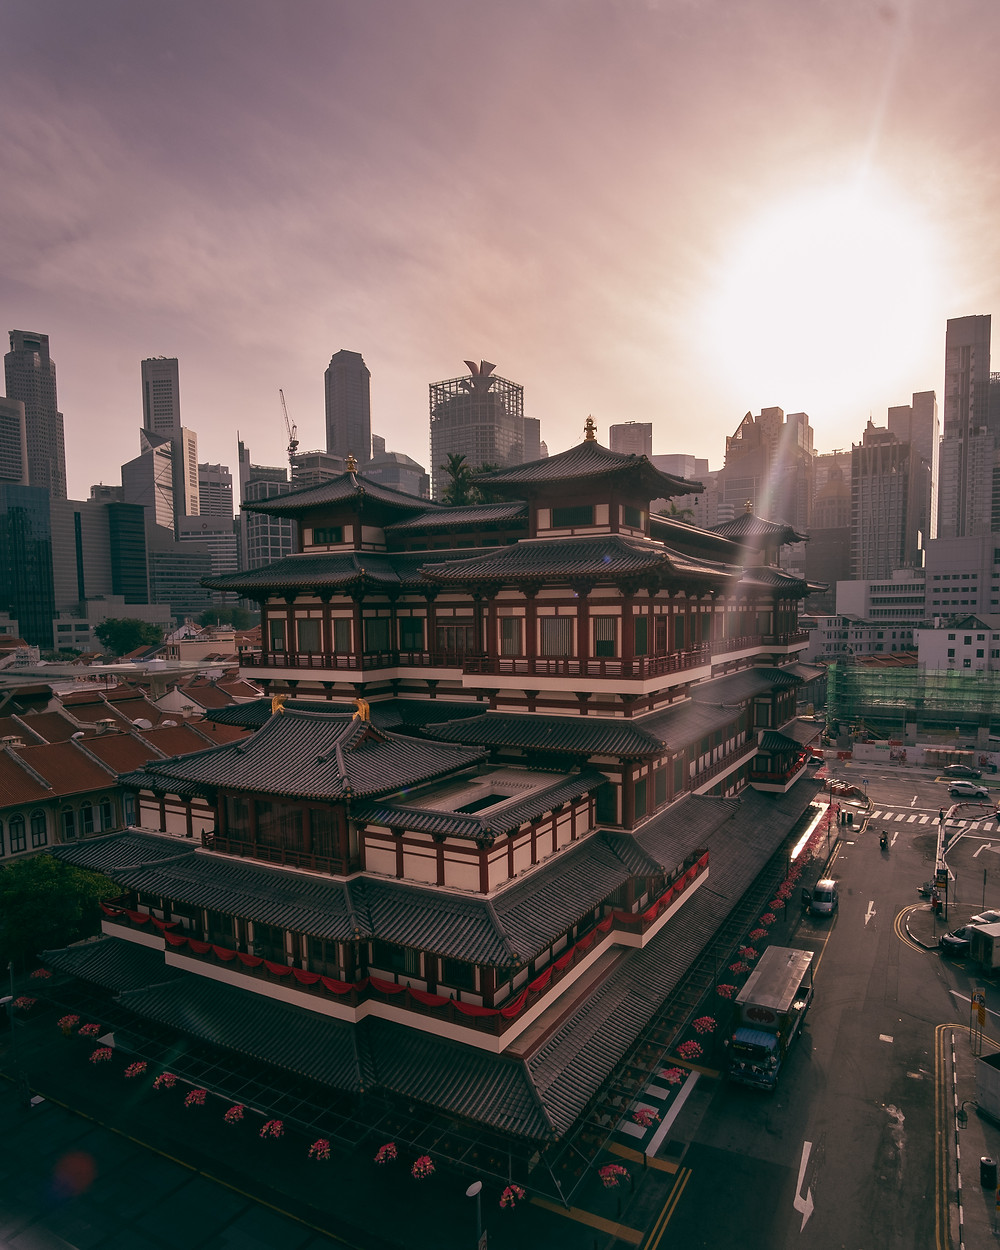 Instagrammable Singapore - Buddha Tooth Relic Temple